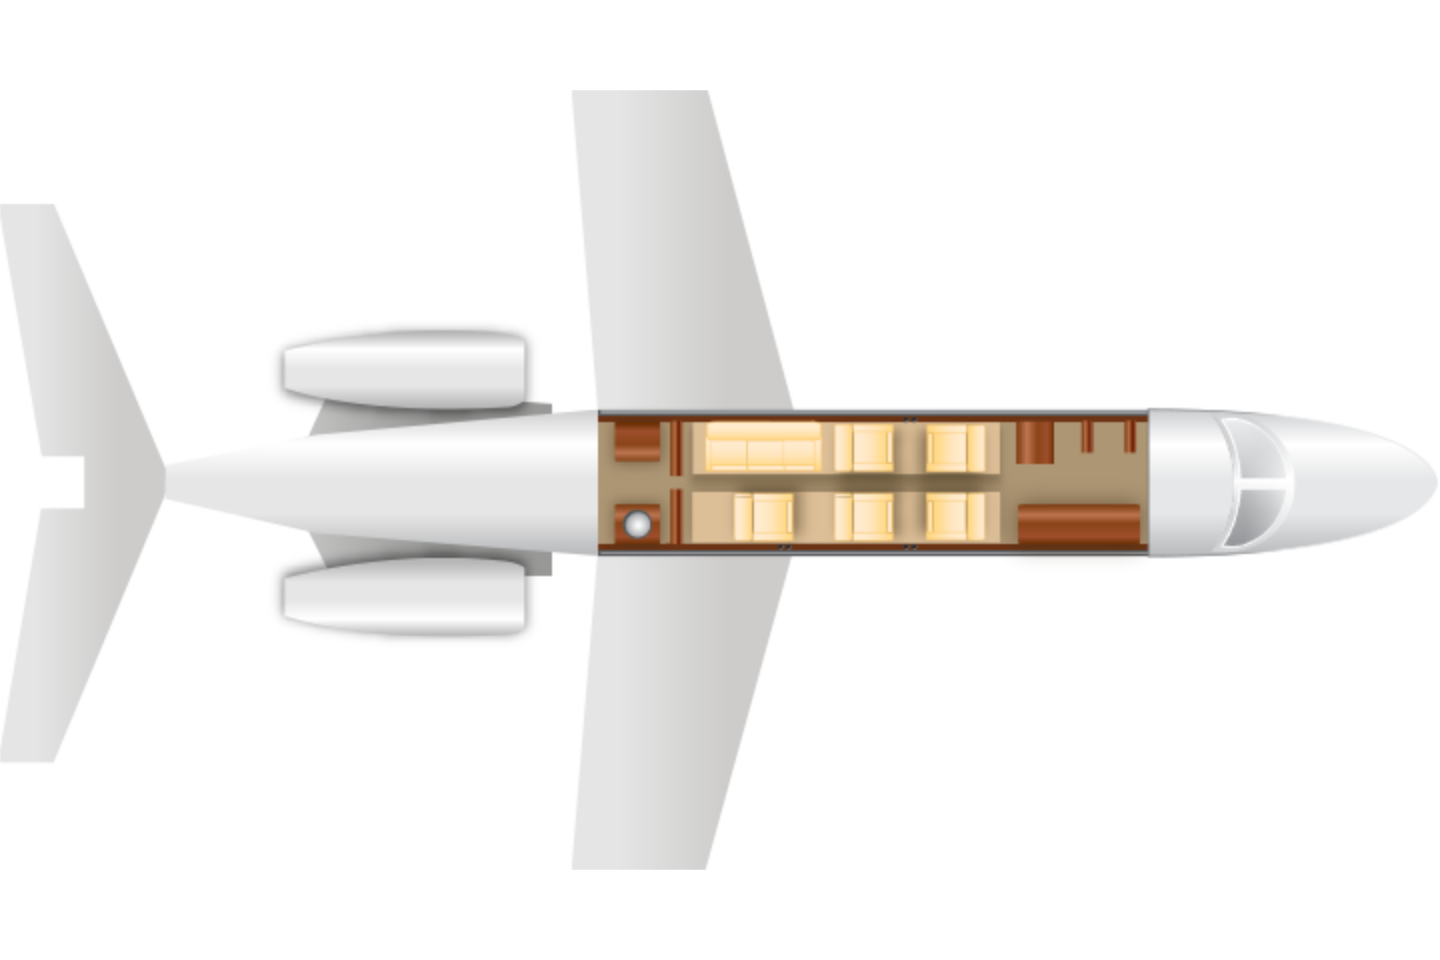 hawker-750-transparent-1412620531.png Floor Plan View